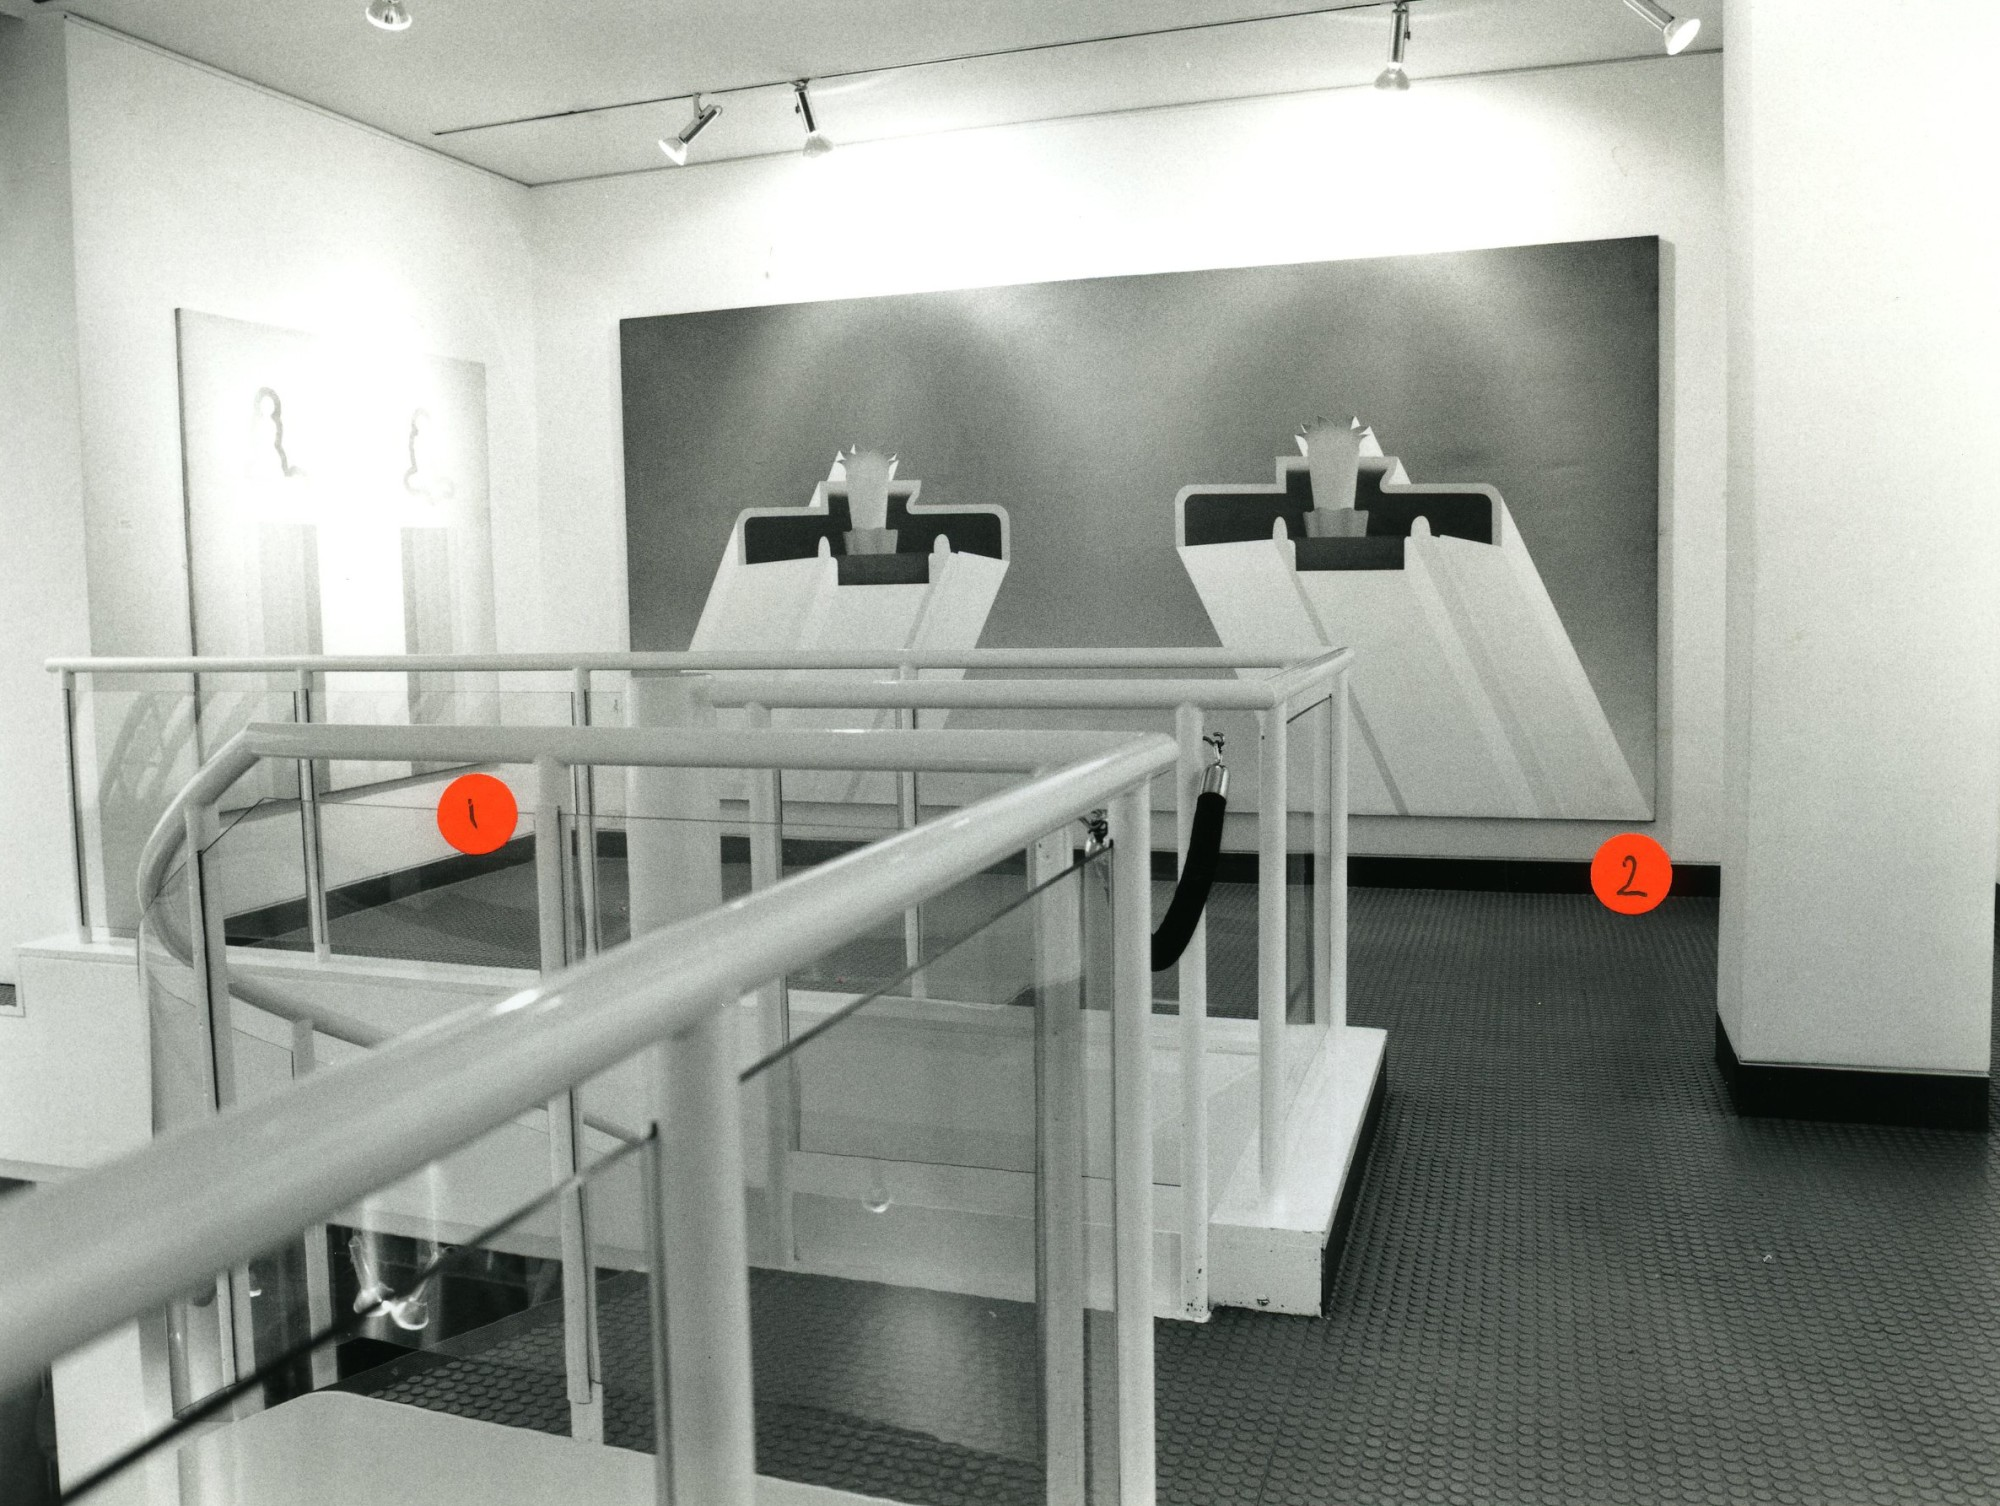 """<span class=""""link fancybox-details-link""""><a href=""""/exhibitions/156/works/image_standalone679/"""">View Detail Page</a></span><p>ANTONY DONALDSON 